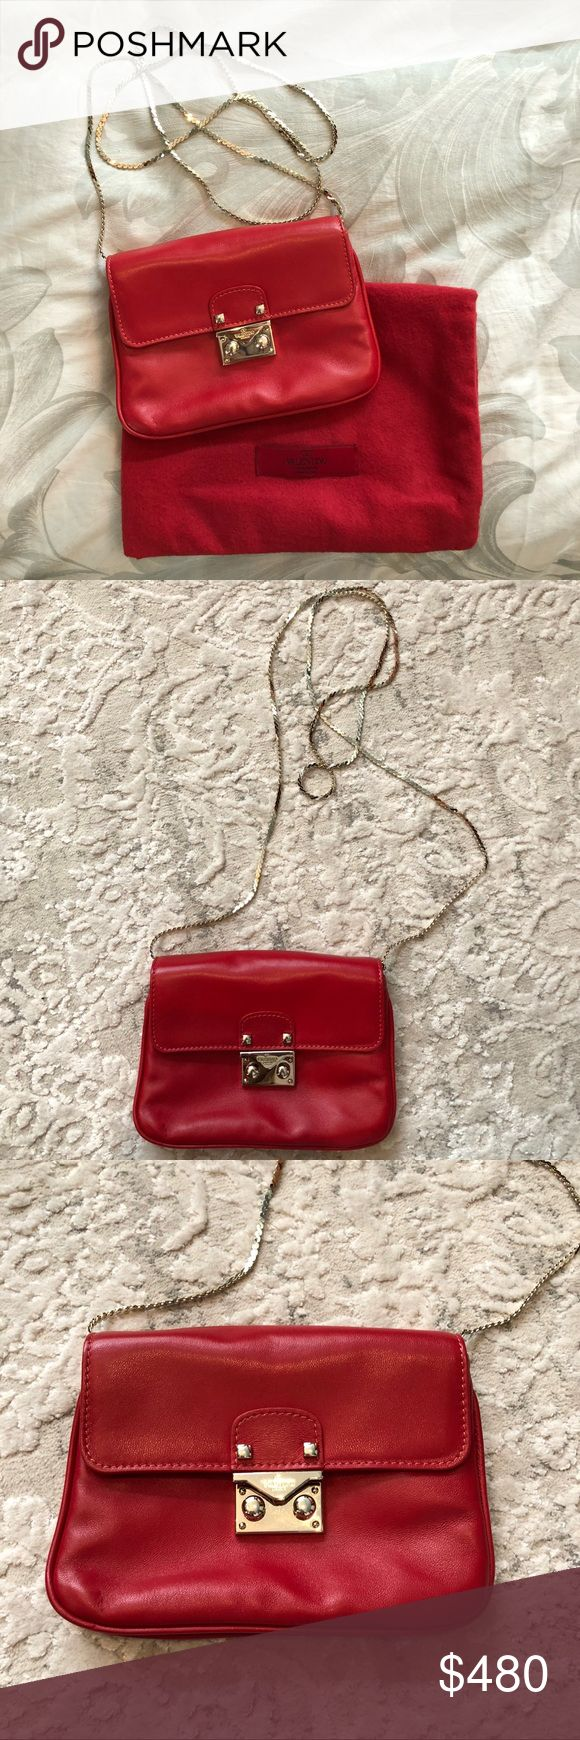 """AUTHENTIC NEW VALENTINO CROSSBODY BAG Brand new red leather crossbody bag. L 5"""" x W 7"""". Can fit a phone in it and makeup. Very convenient for going out at night. Valentino Bags Crossbody Bags"""